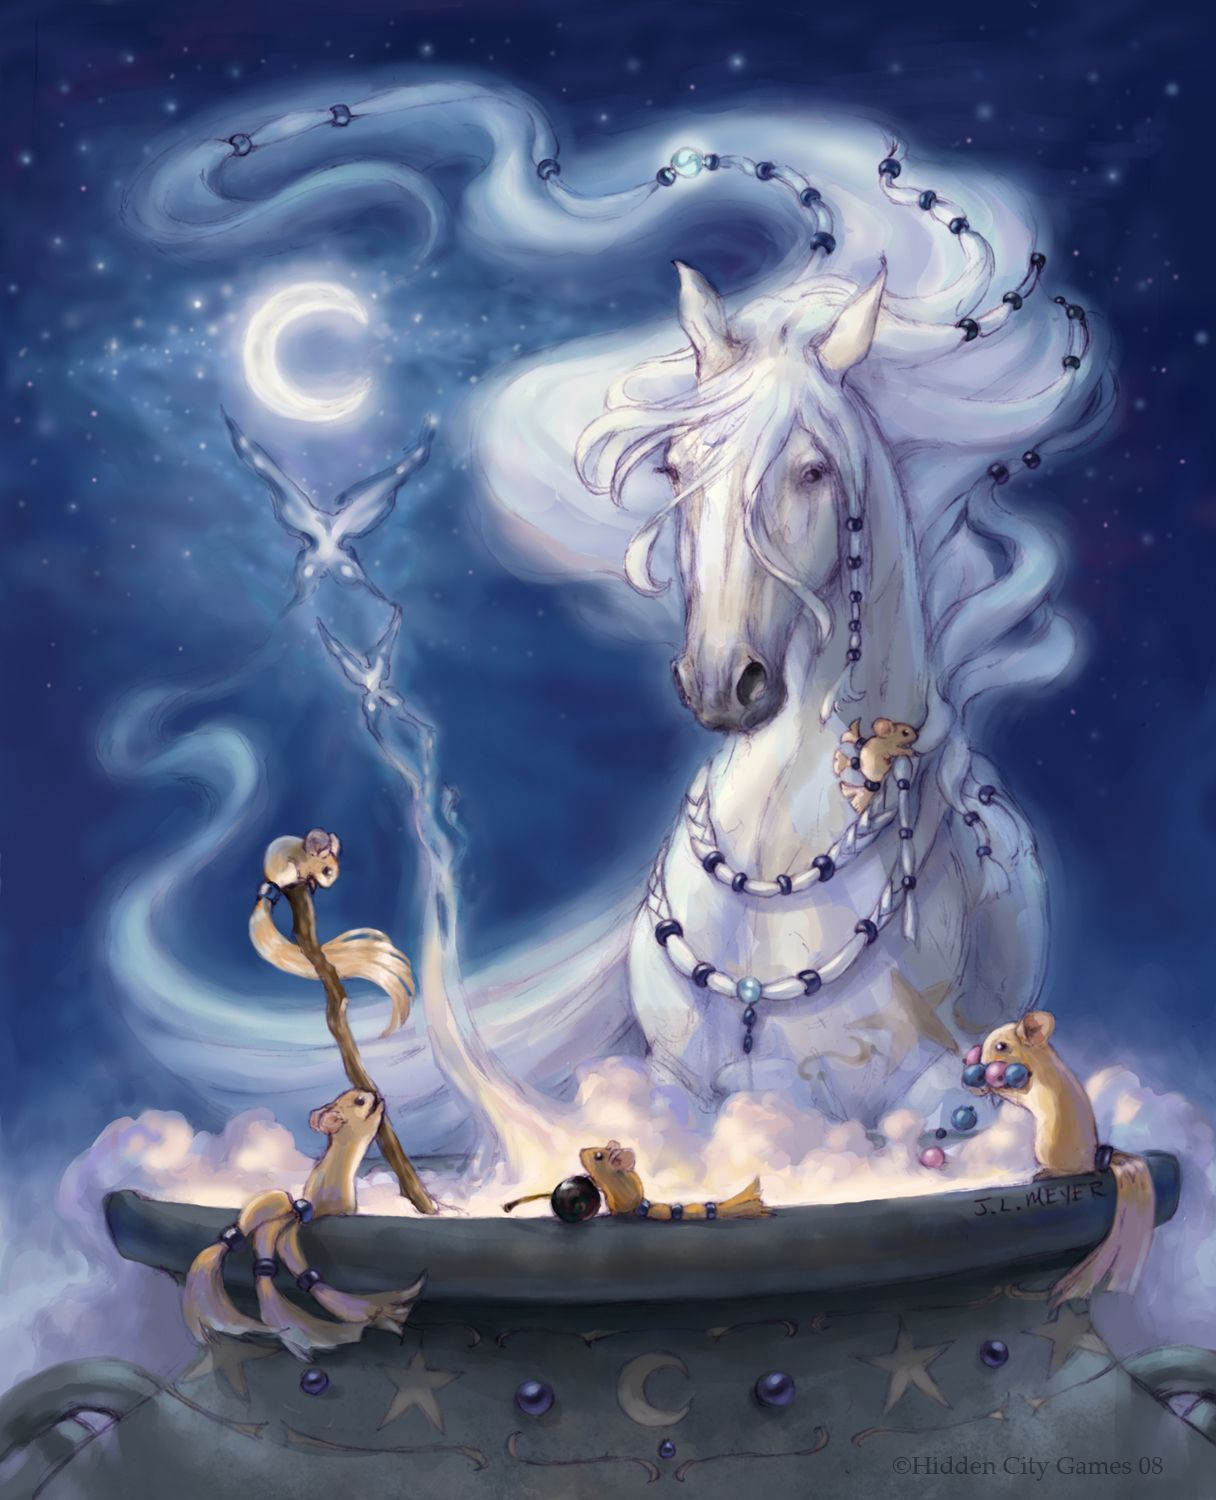 Witch Horse creating butterflies illustration by Jennifer L. Meyer